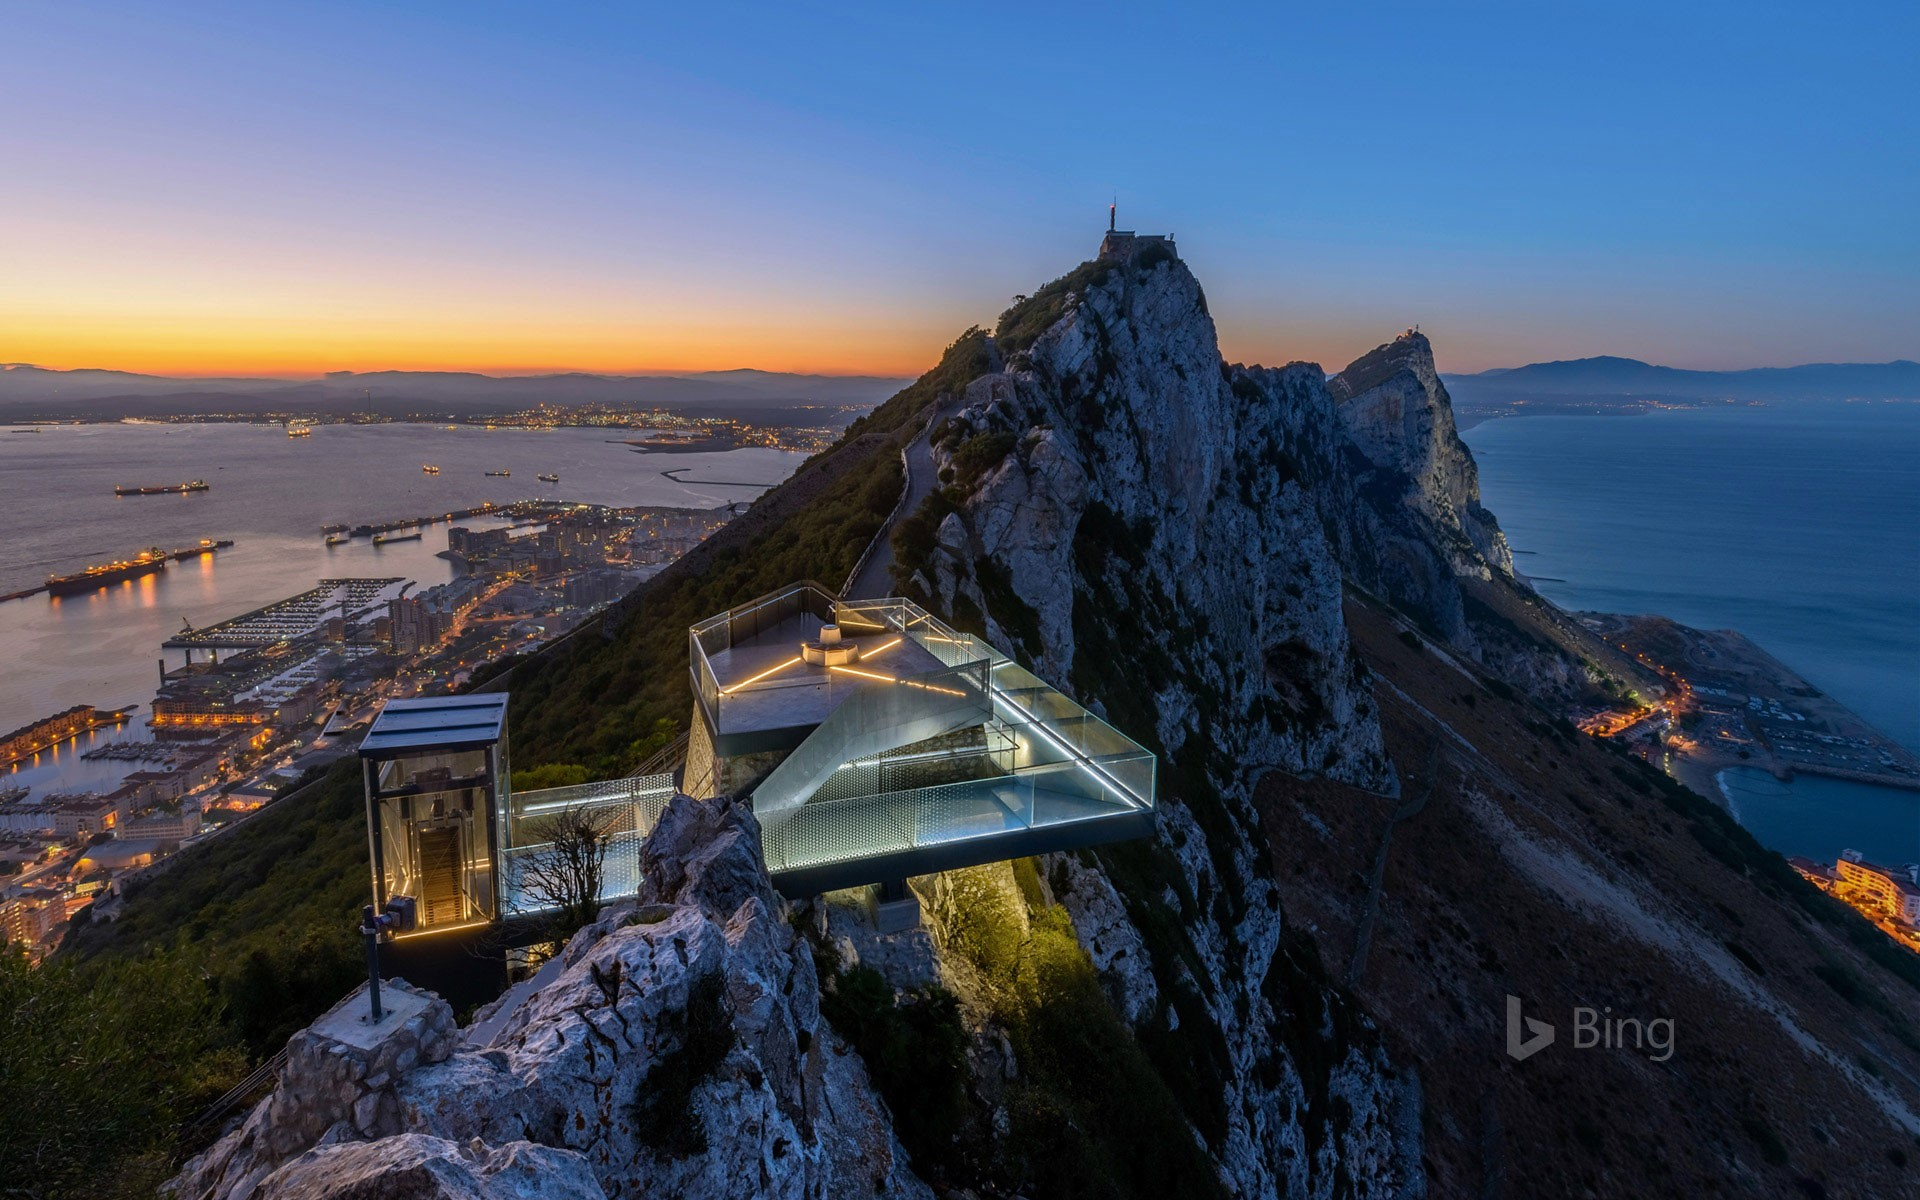 The Skywalk on the Rock of Gibraltar